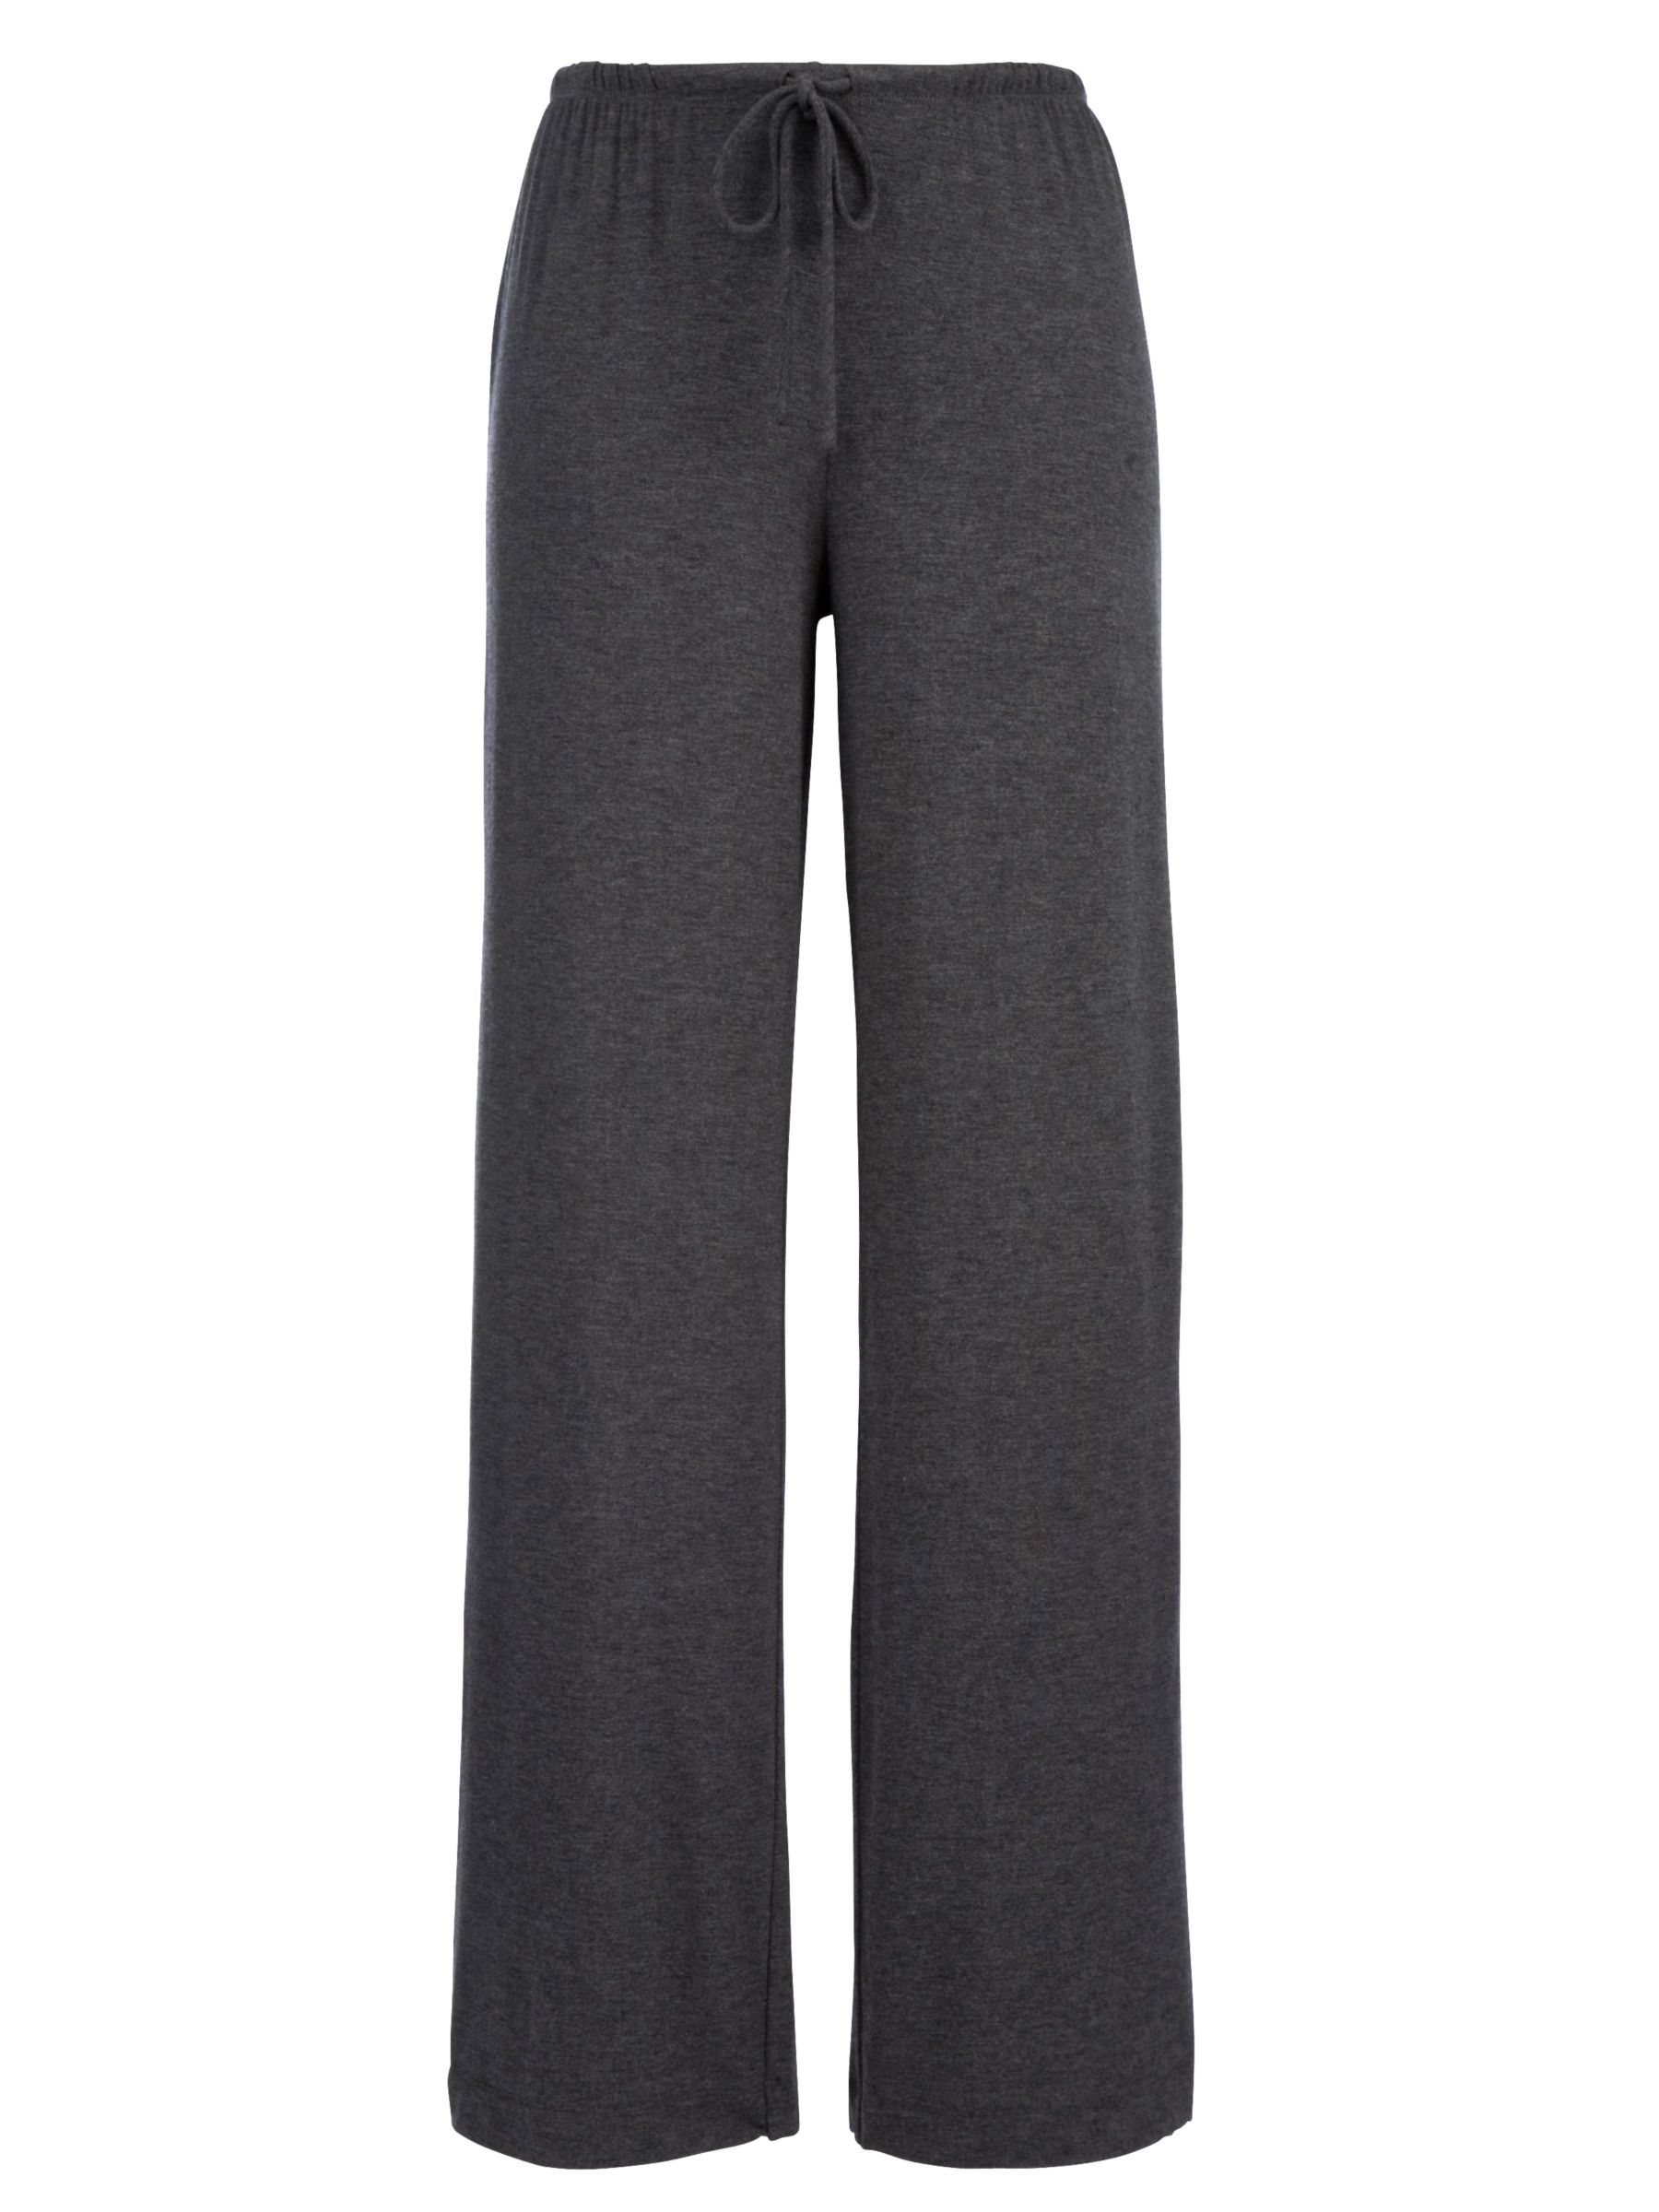 DKNY Seven Easy Pieces Drawstring Pyjama Trousers, Charcoal